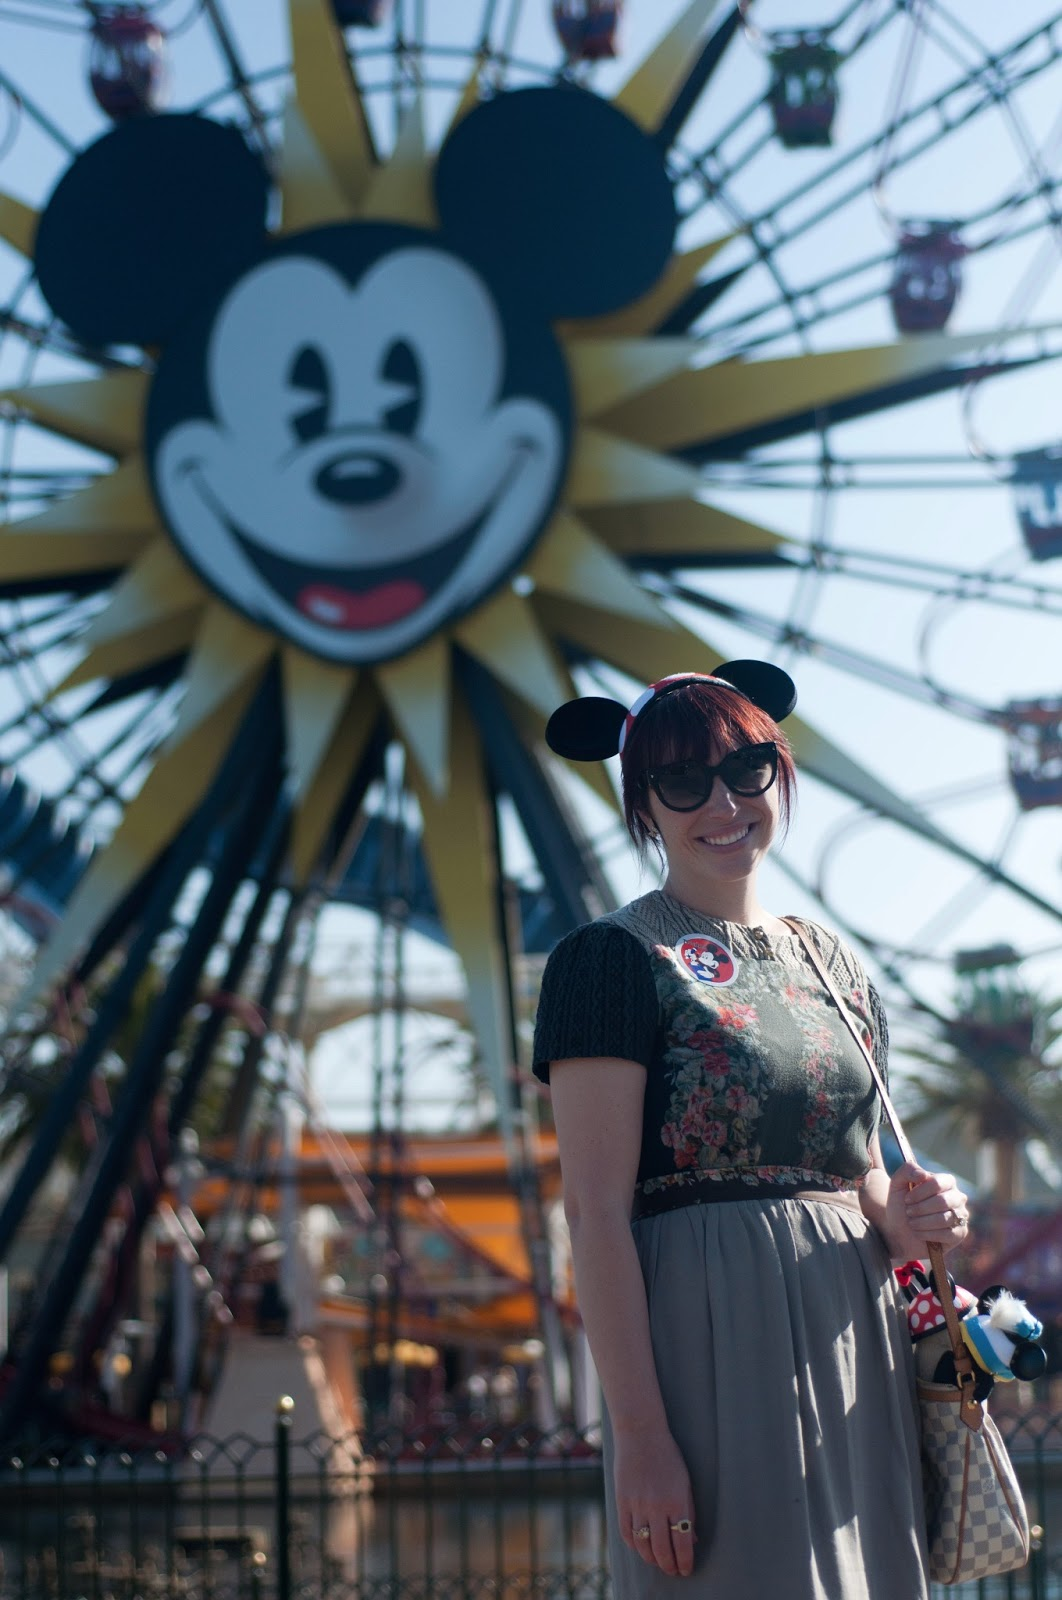 disney, disneyland, california adventure, bugs land, cars land, a bugs life, cars, flick, disney apparel, disney blog, fashion blog, style blog, ootd, mens style, womens style, california adventure ferris wheel, pixar parade, toystory, pixar, mickey mouse, anthropologie dress, prada cat eye sunglasses, minnie mouse ears,